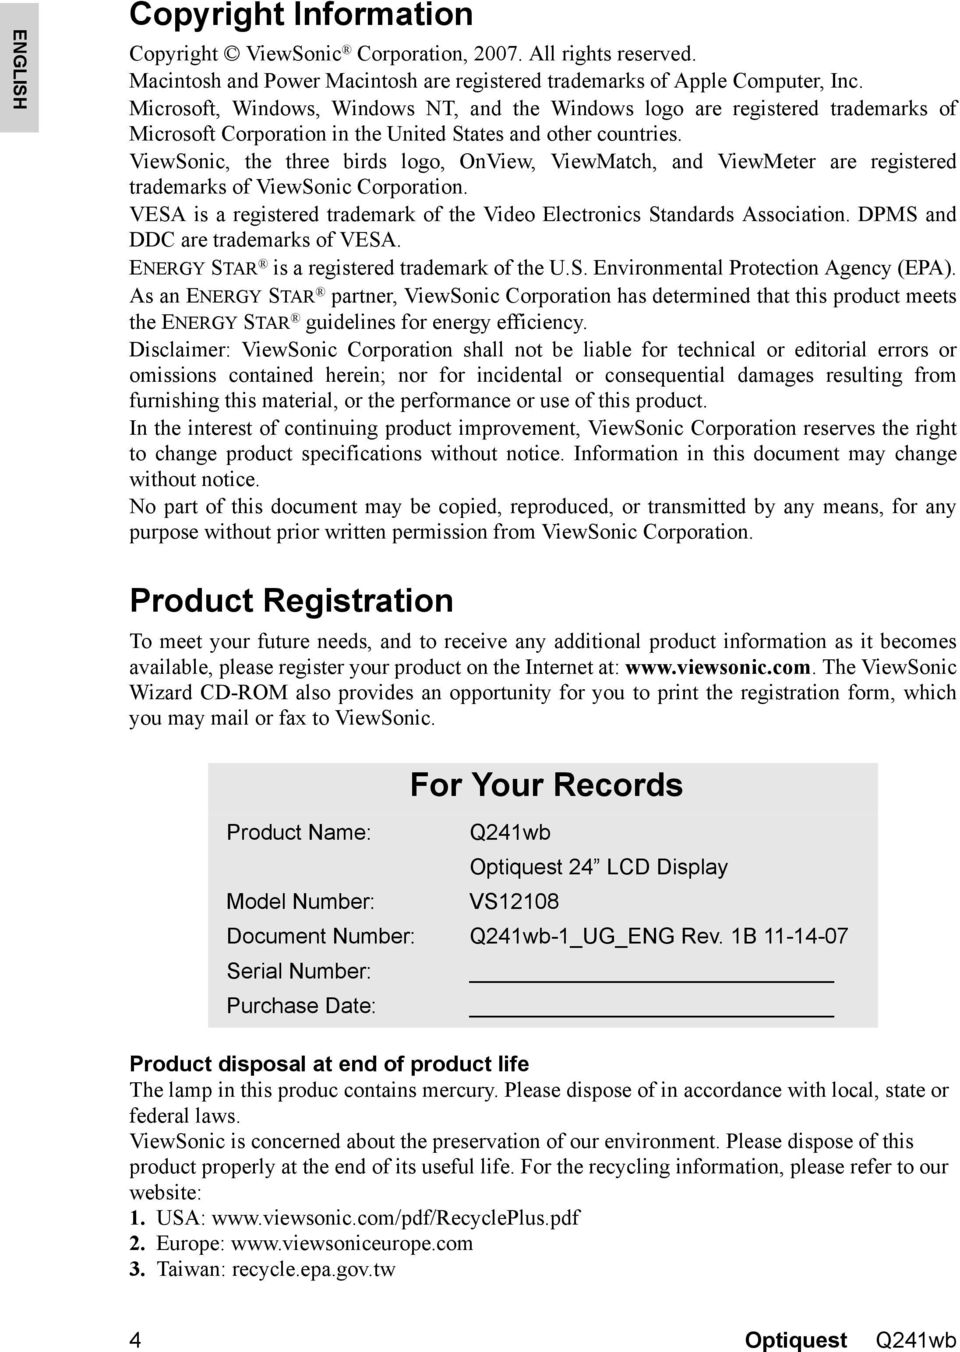 ViewSonic, the three birds logo, OnView, ViewMatch, and ViewMeter are registered trademarks of ViewSonic Corporation. VESA is a registered trademark of the Video Electronics Standards Association.